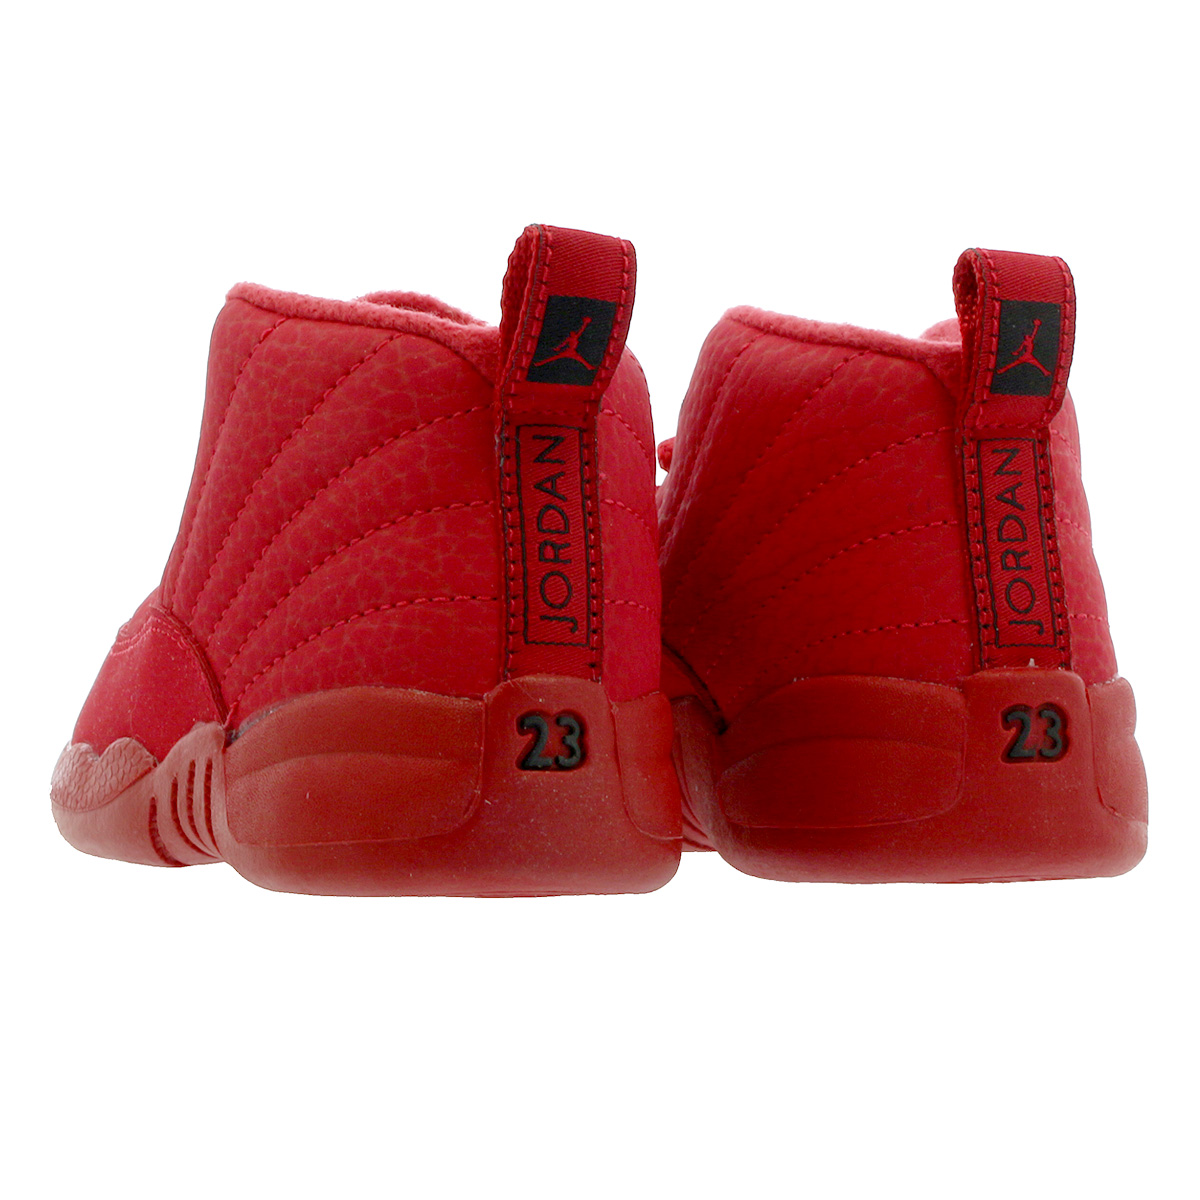 huge discount f2cd2 f0594 NIKE AIR JORDAN 12 RETRO TD Nike Air Jordan 12 nostalgic TD GYM  RED/BLACK/BLACK 850,000-601